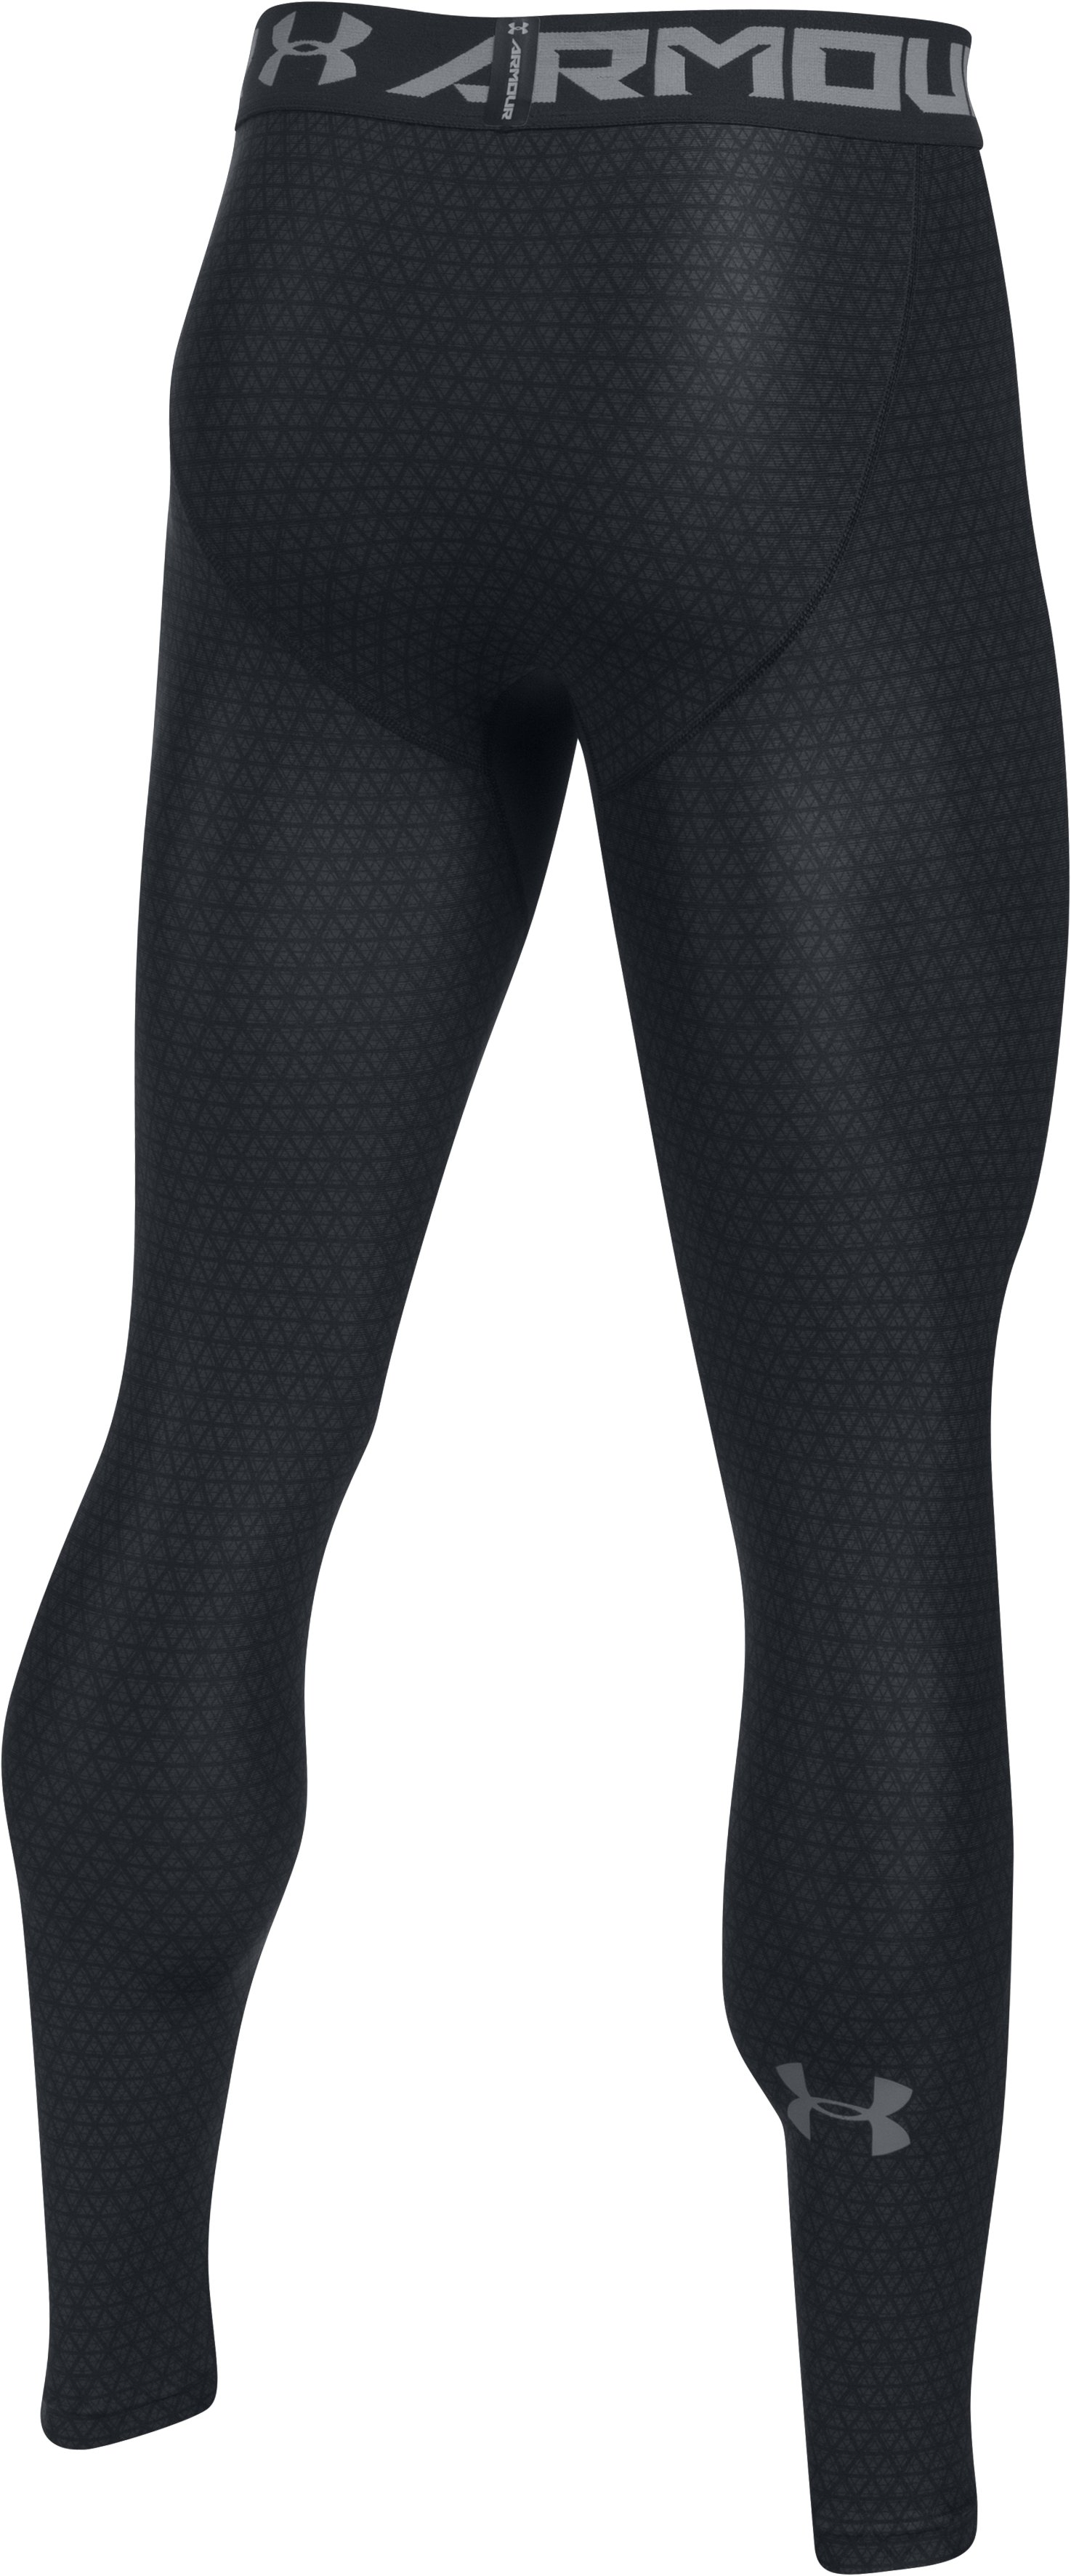 Men's HeatGear® Armour Printed Compression Leggings, Black ,